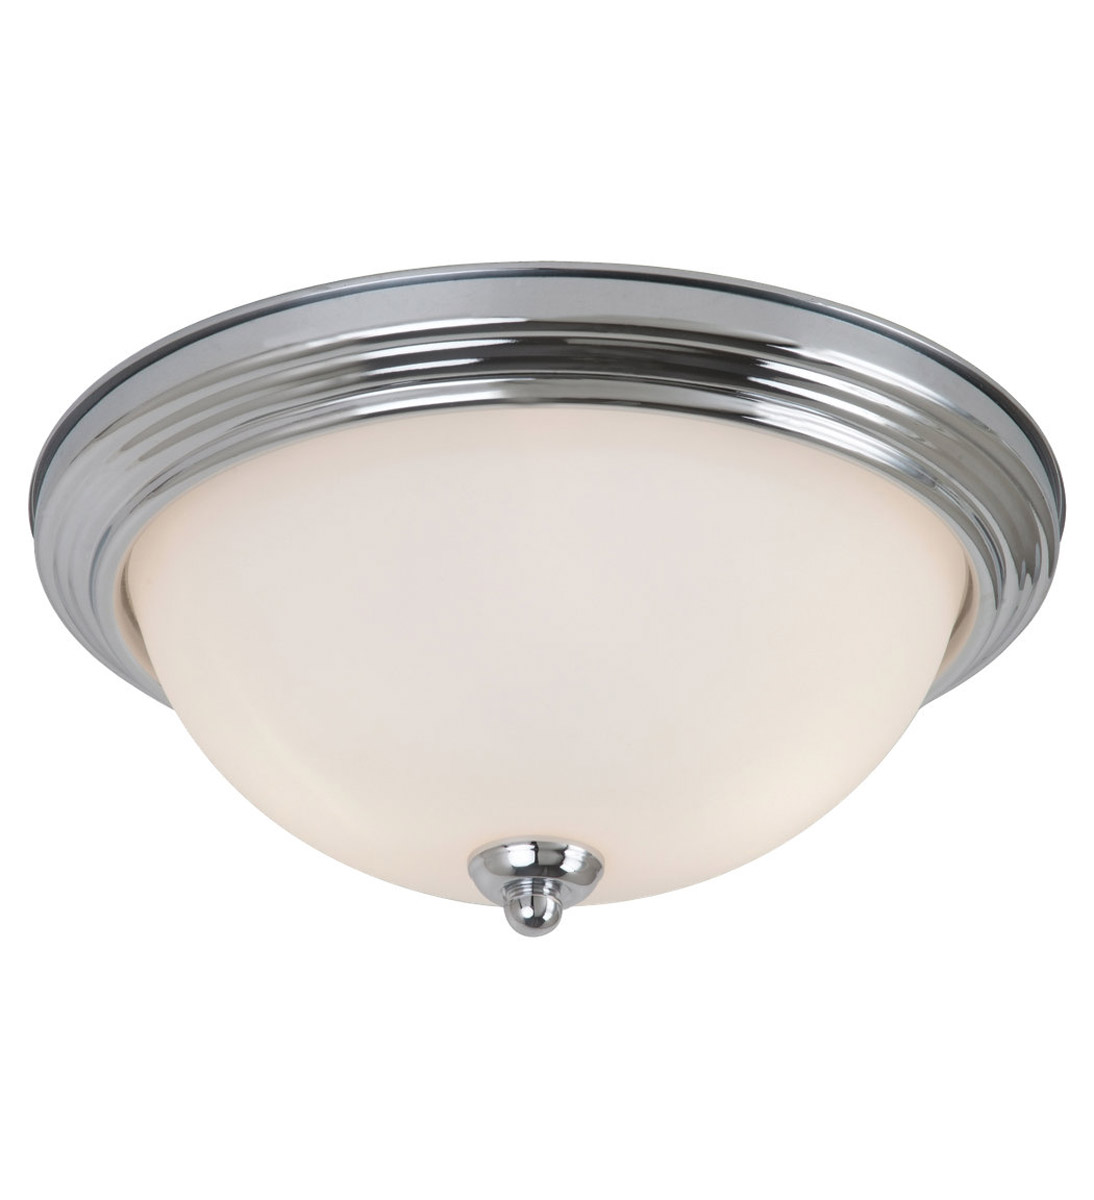 Sea Gull Oslo 2 Light Flush Mount in Chrome 79164BLE-05 photo